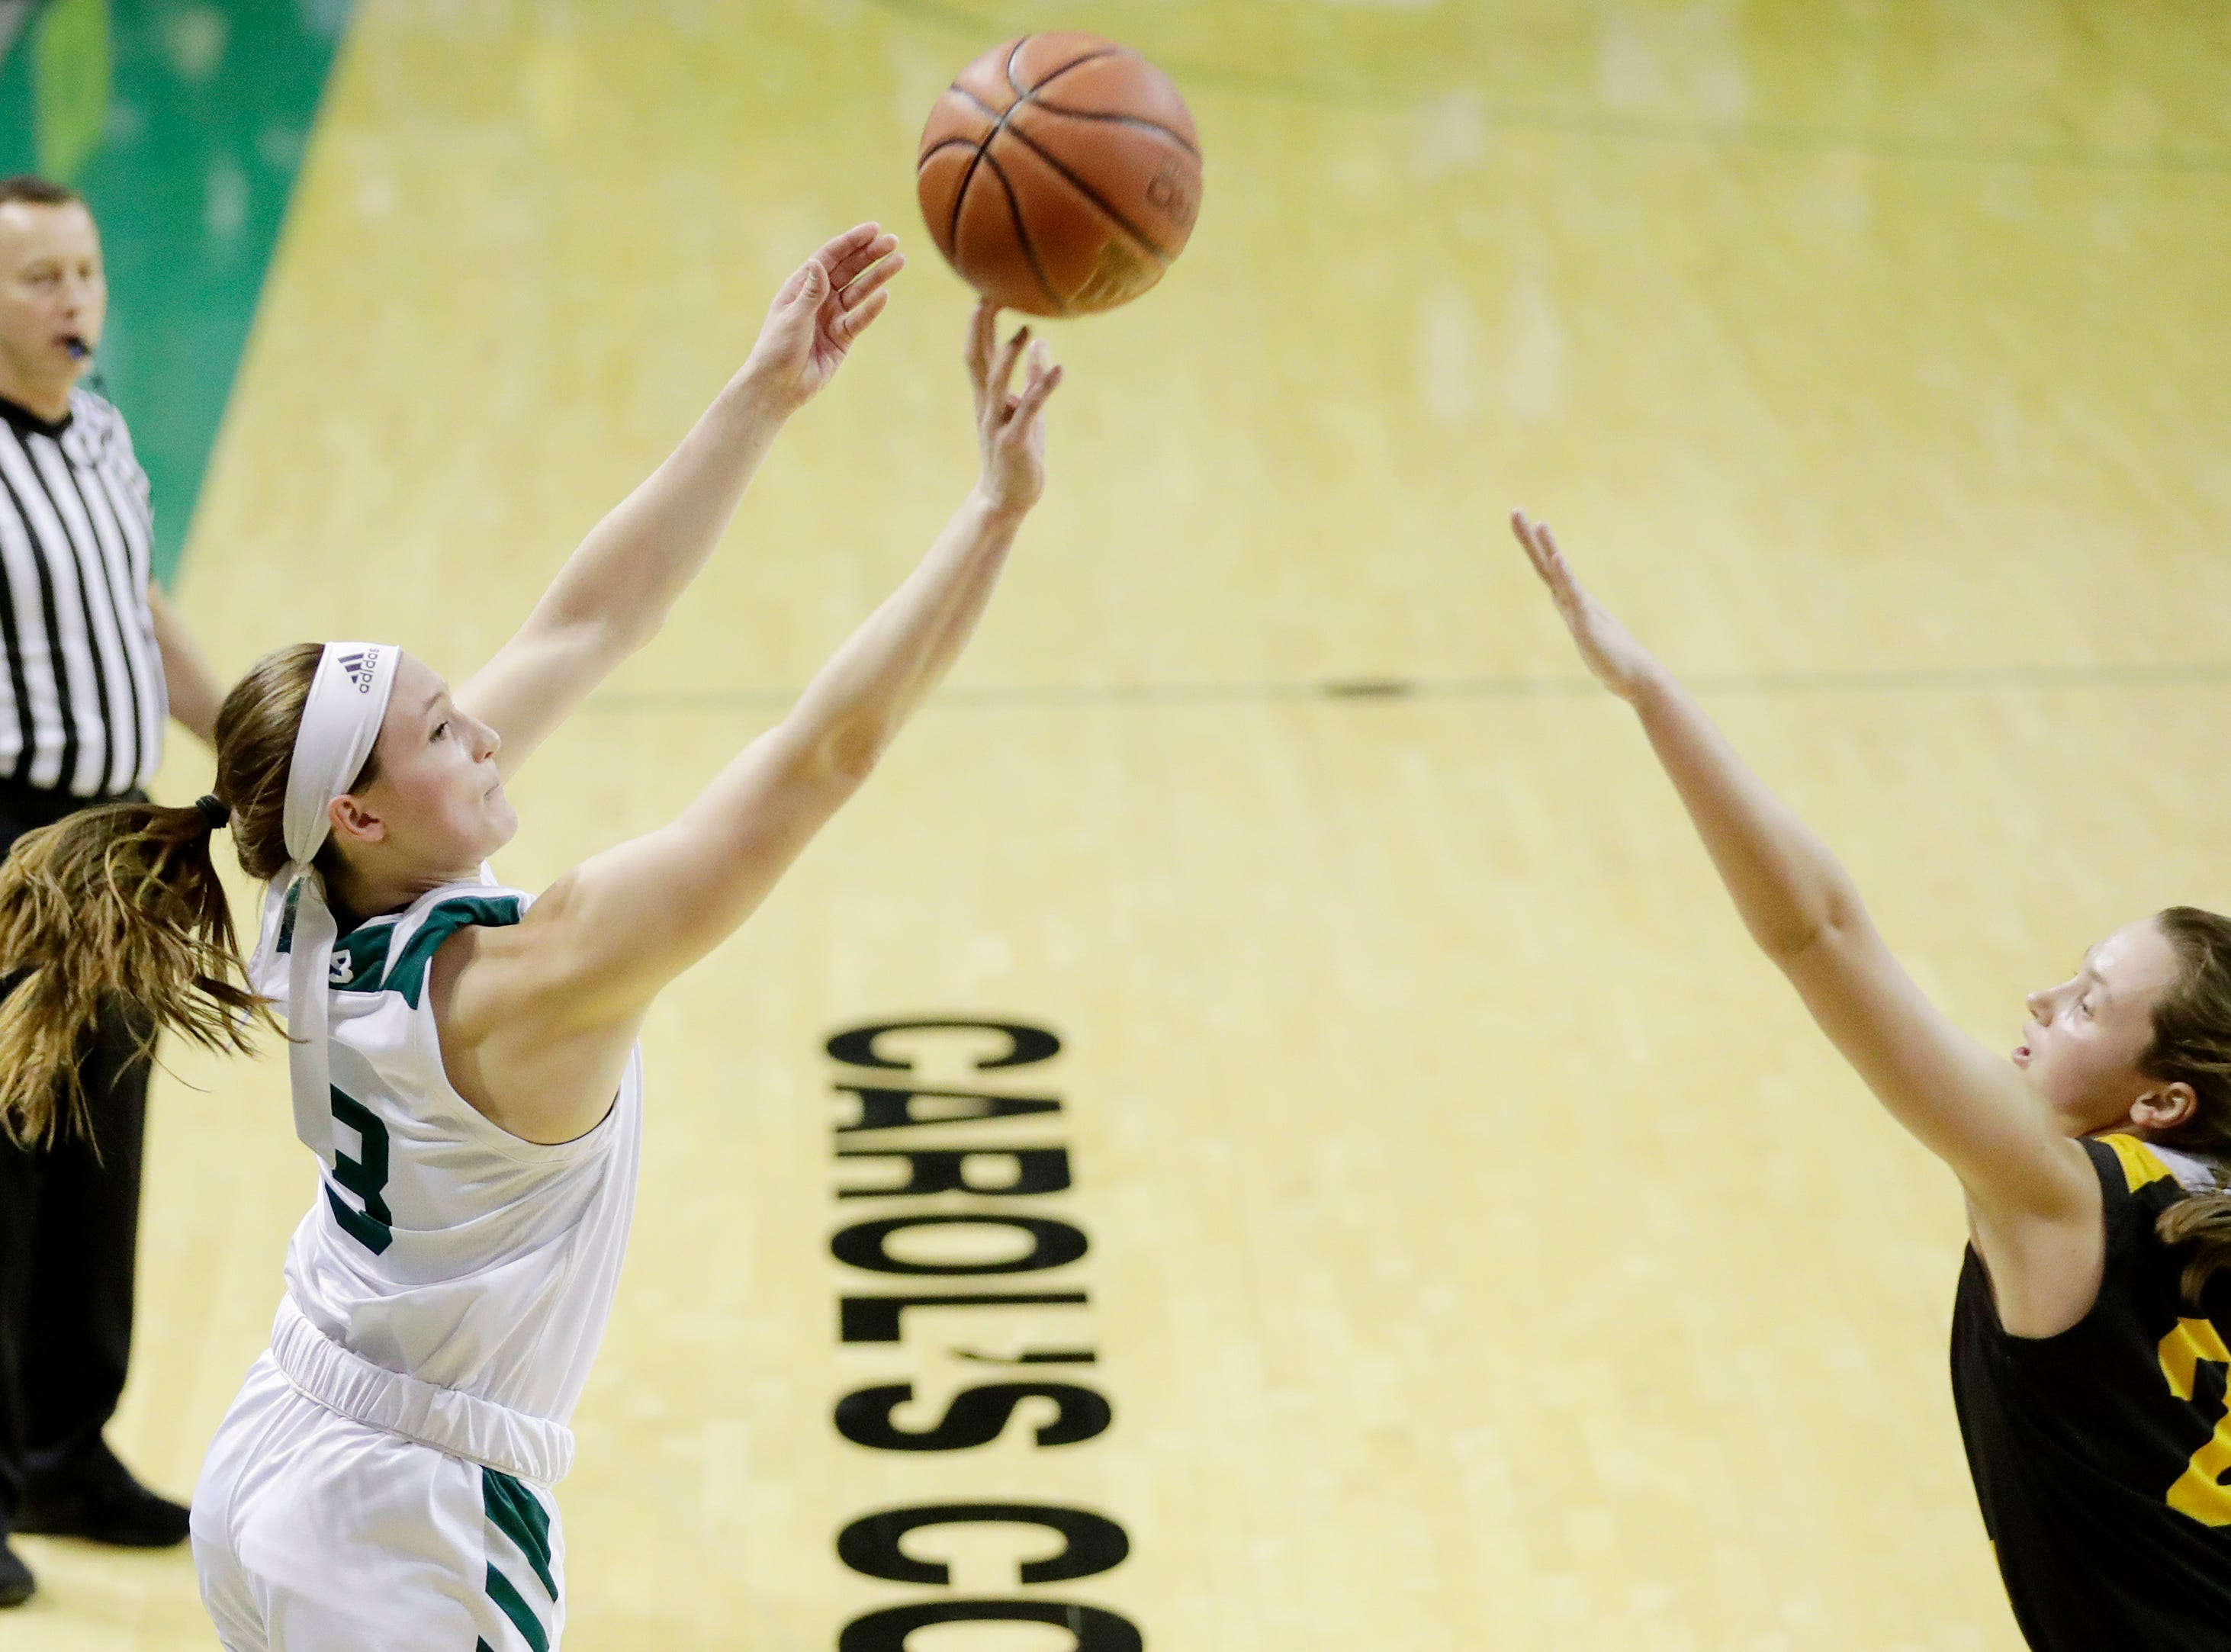 Green Bay Phoenix guard Frankie Wurtz (3) shoots a three against the Northern Kentucky Norse in a Horizon League women's basketball game at the Kress Center on Thursday, February 7, 2019 in Green Bay, Wis.